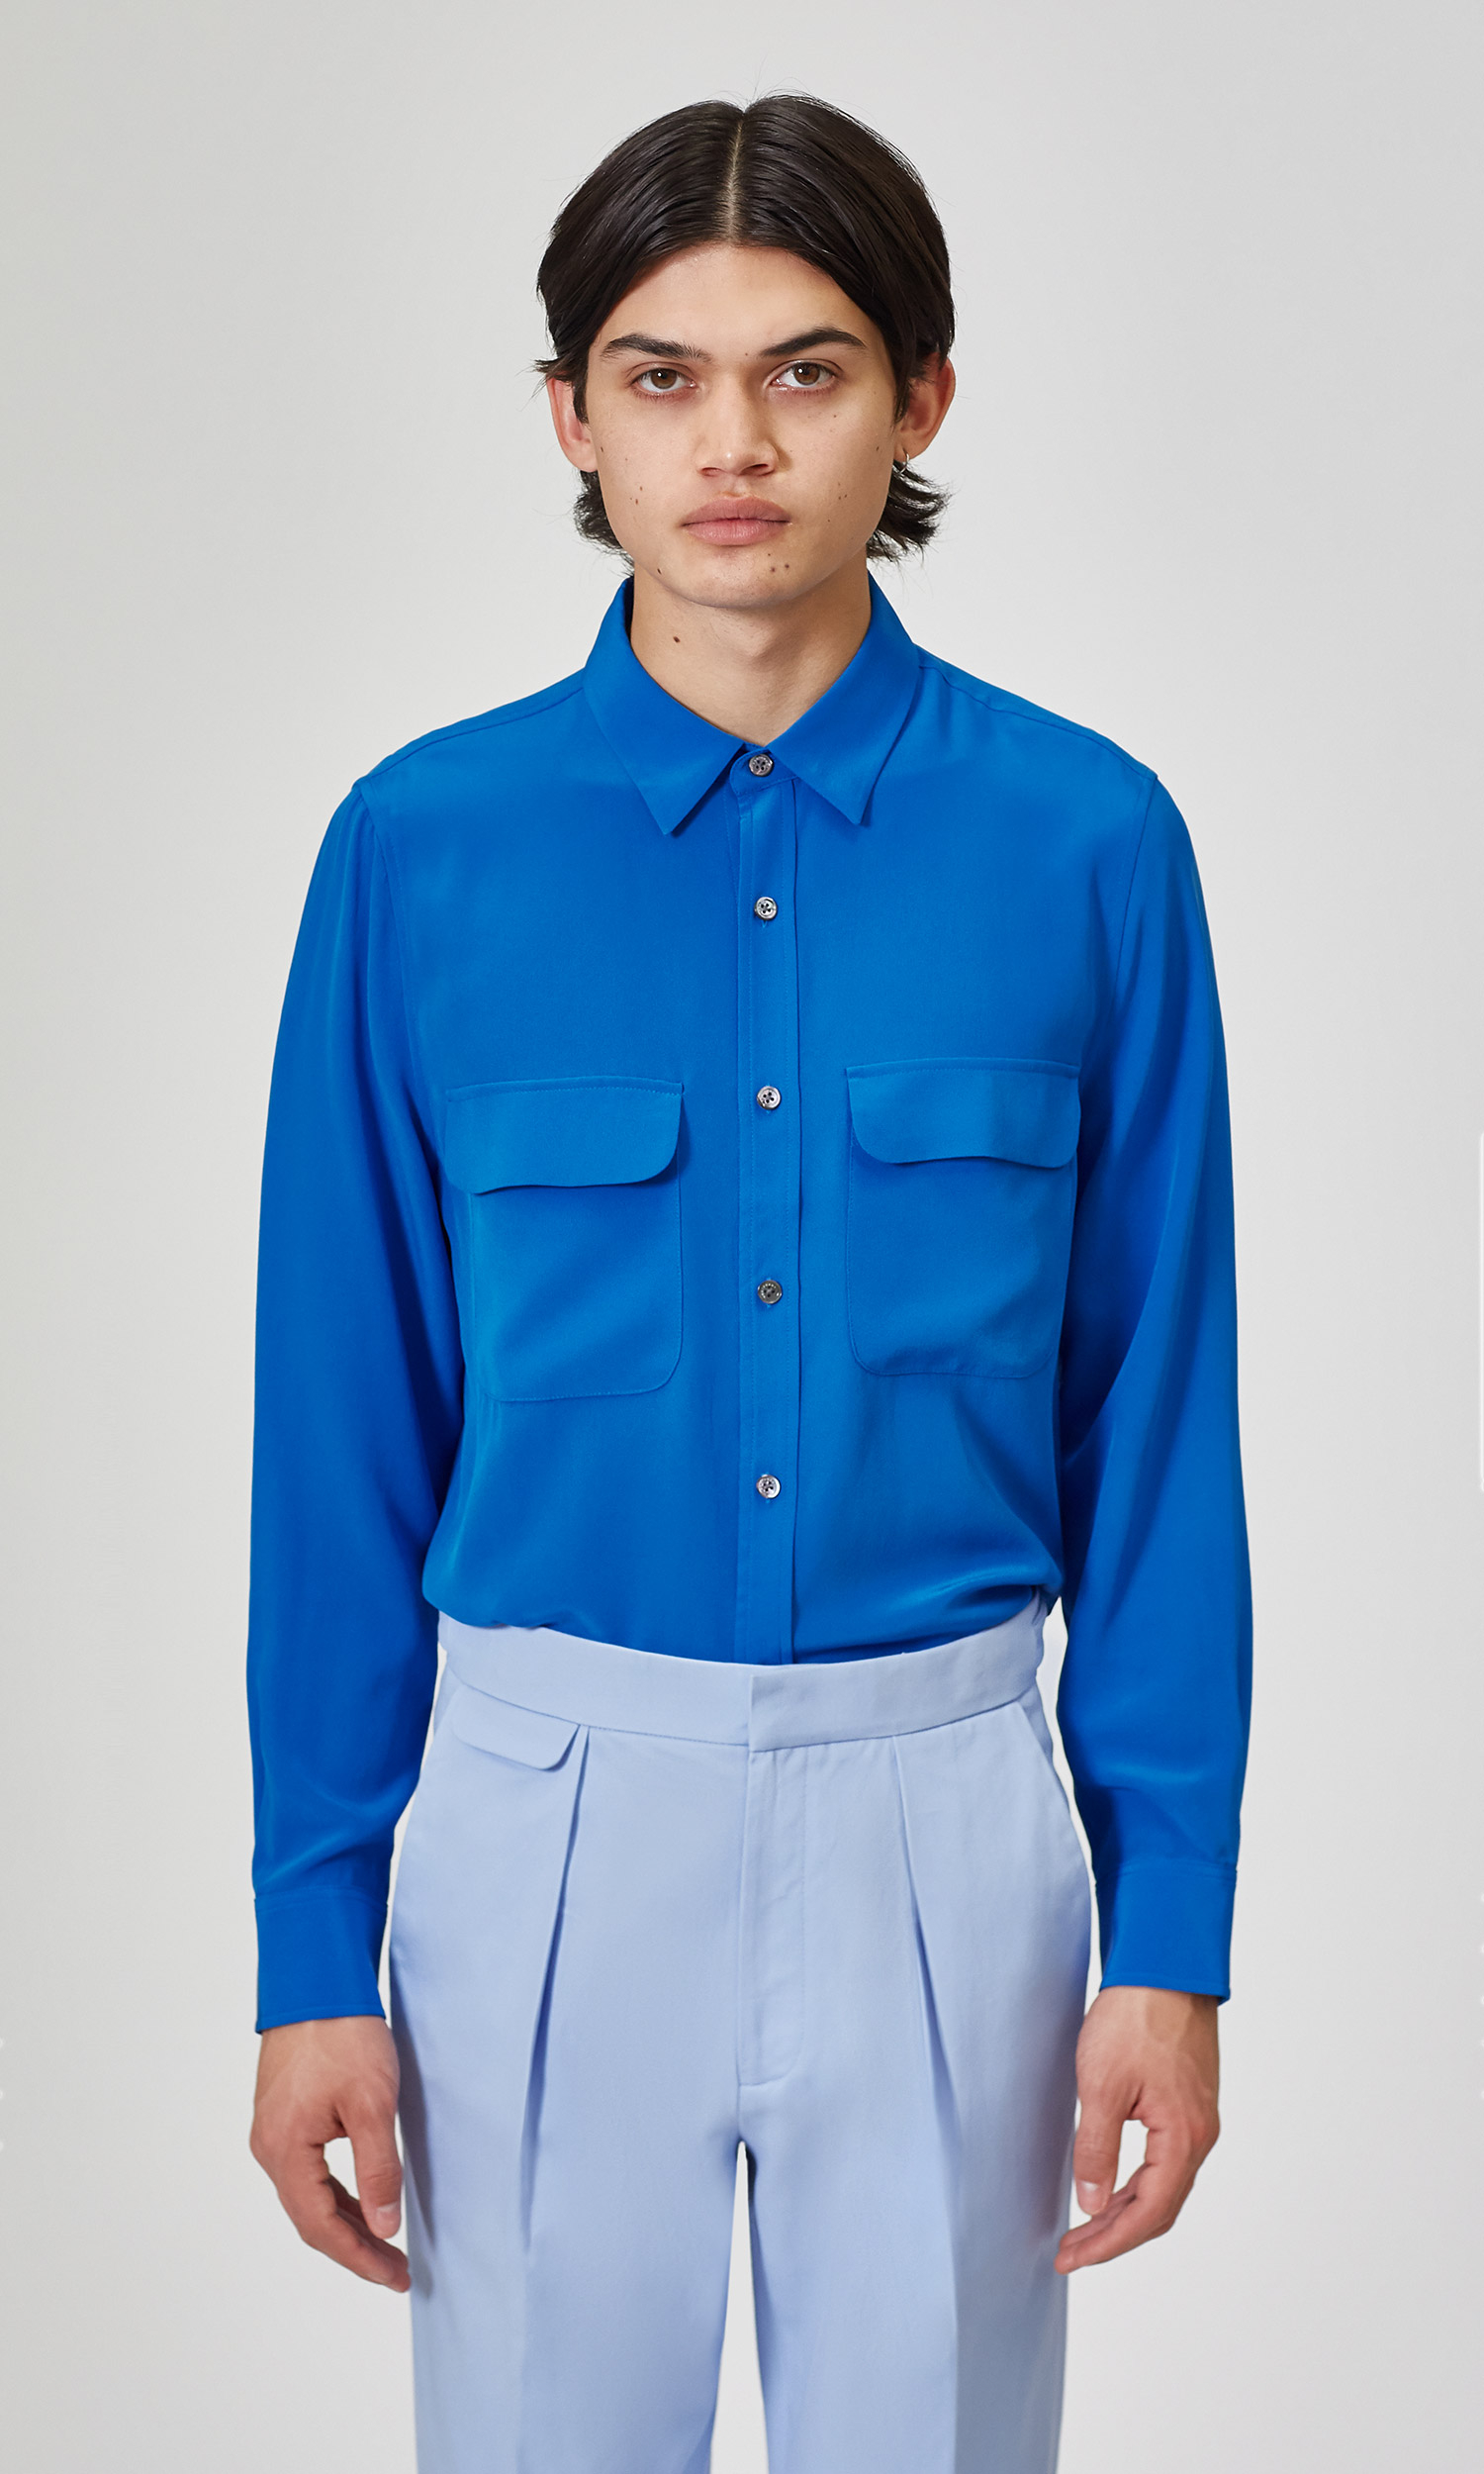 The Original Silk Shirt by Equipment